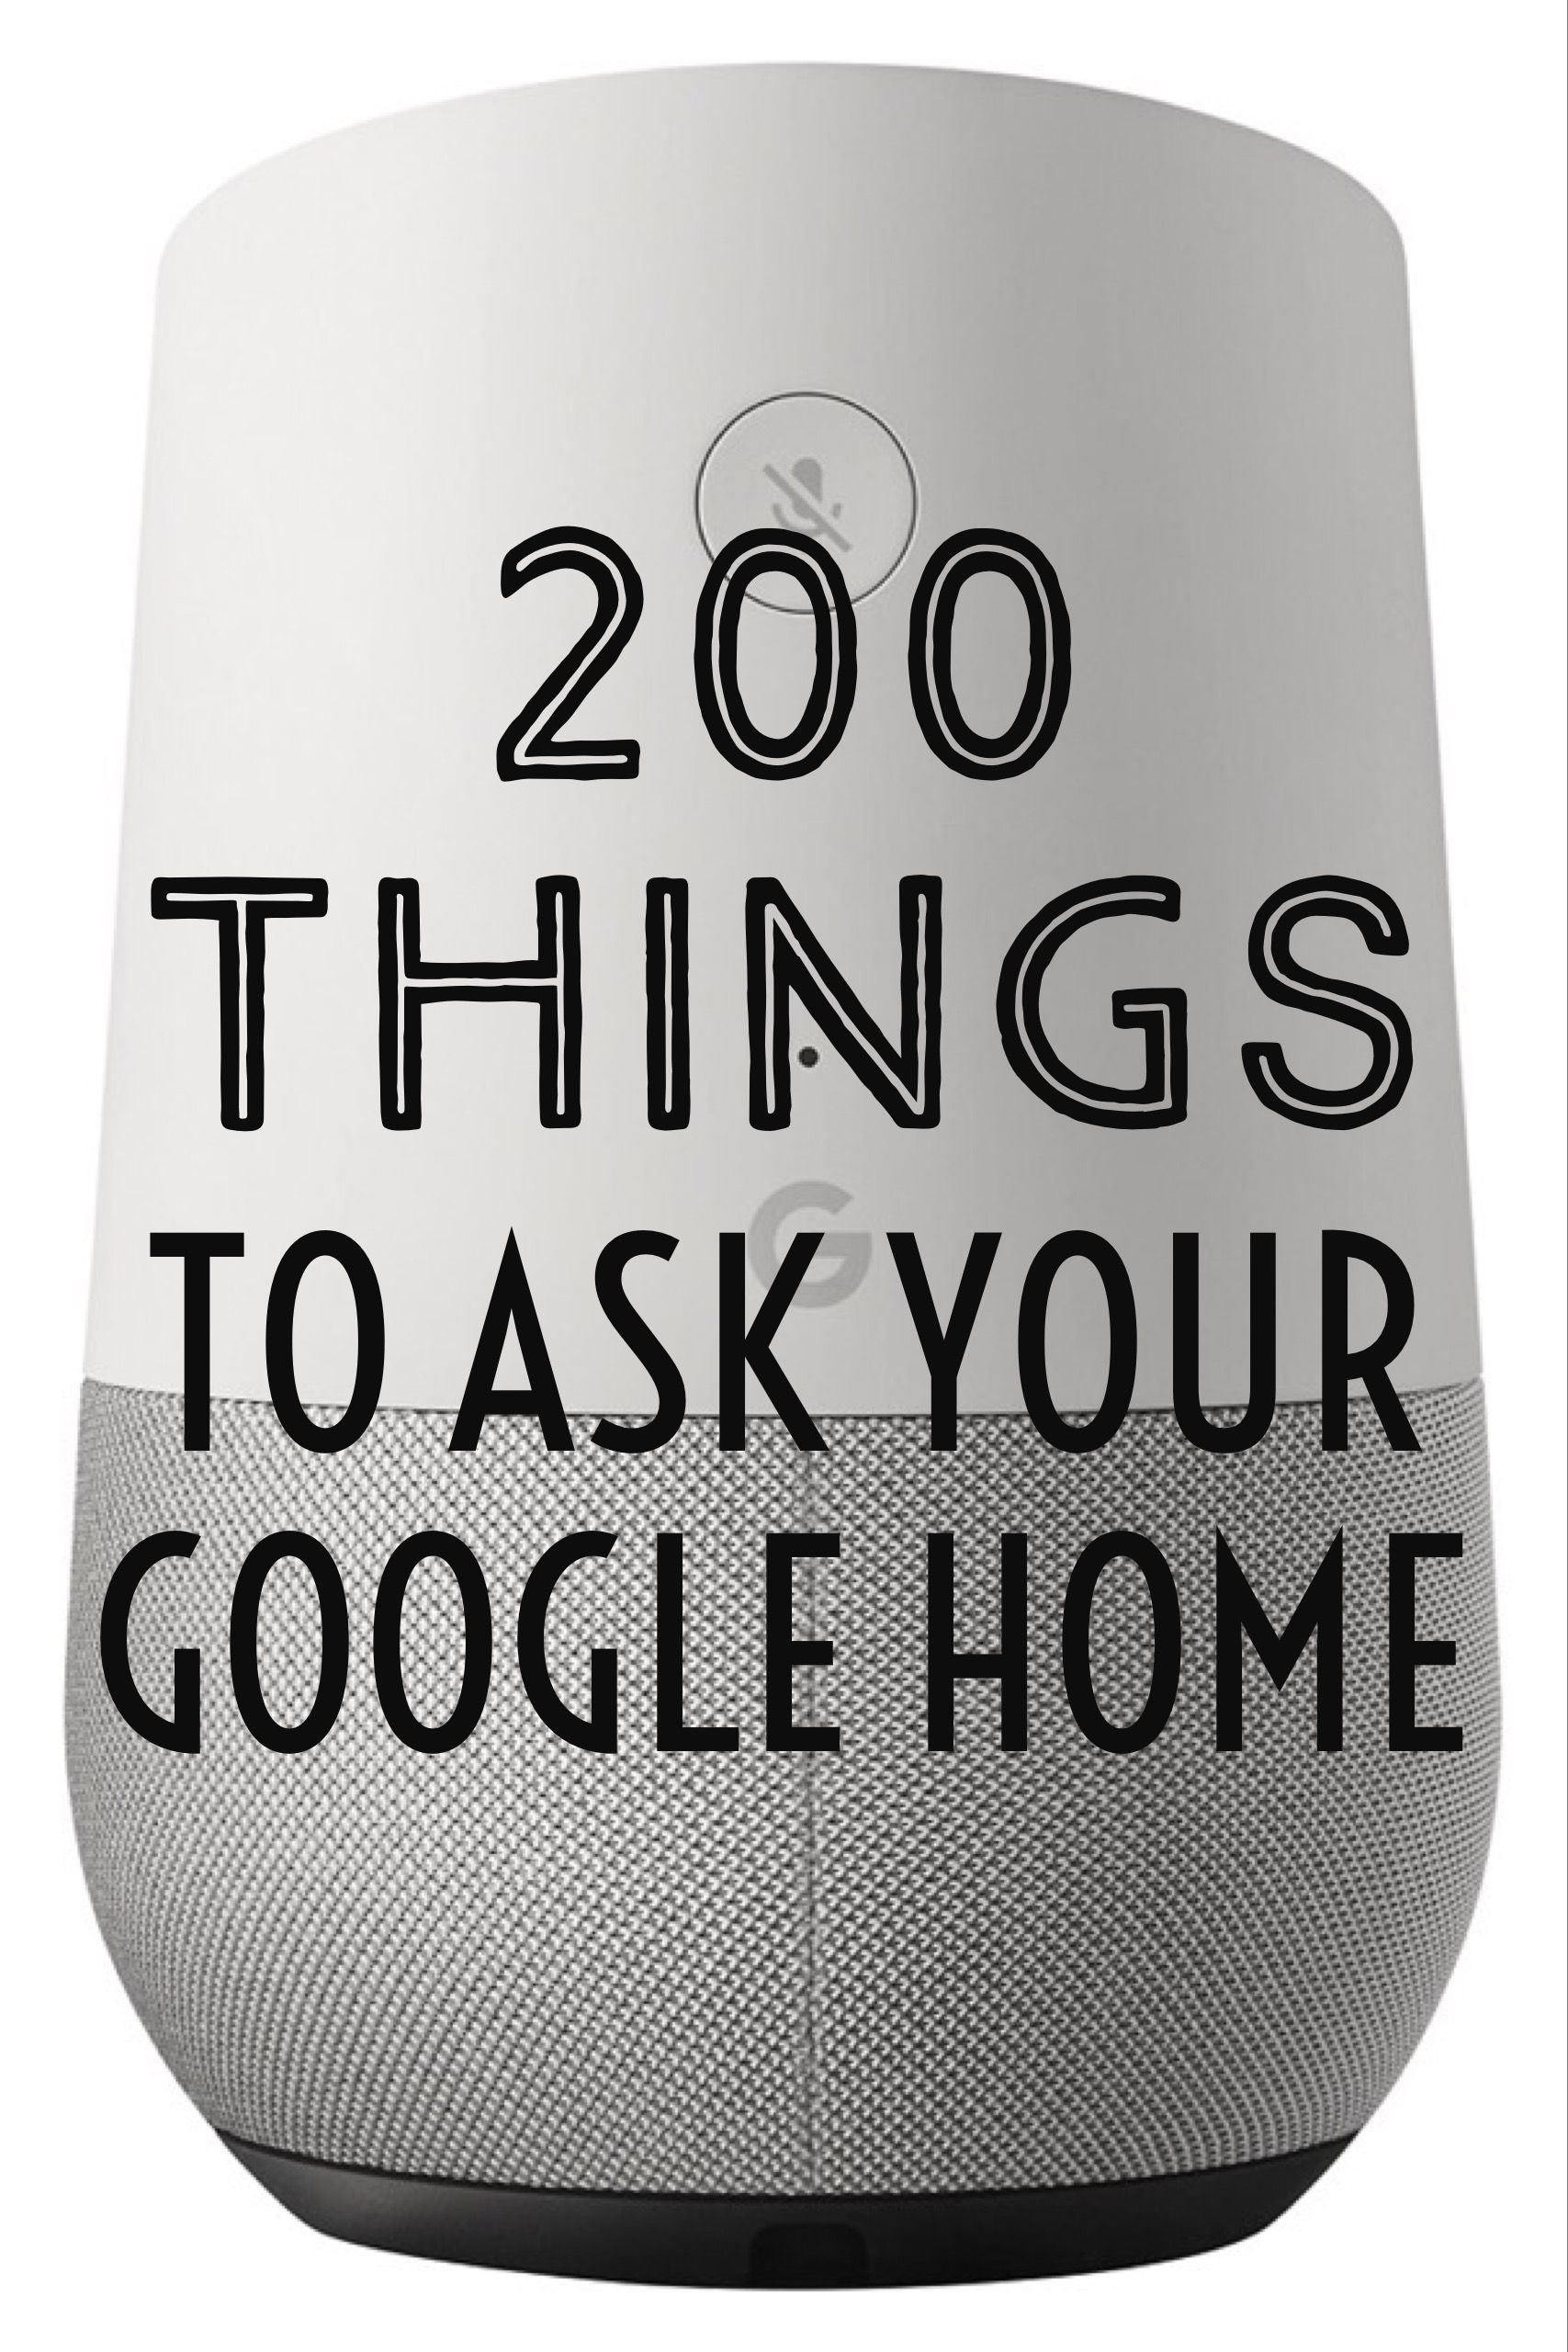 Google Home Now Has More Than 200 Third Party Skills Also Known As Conversation Actions If You Re Just Getting Started Google Home Smart Speaker Smart Tech